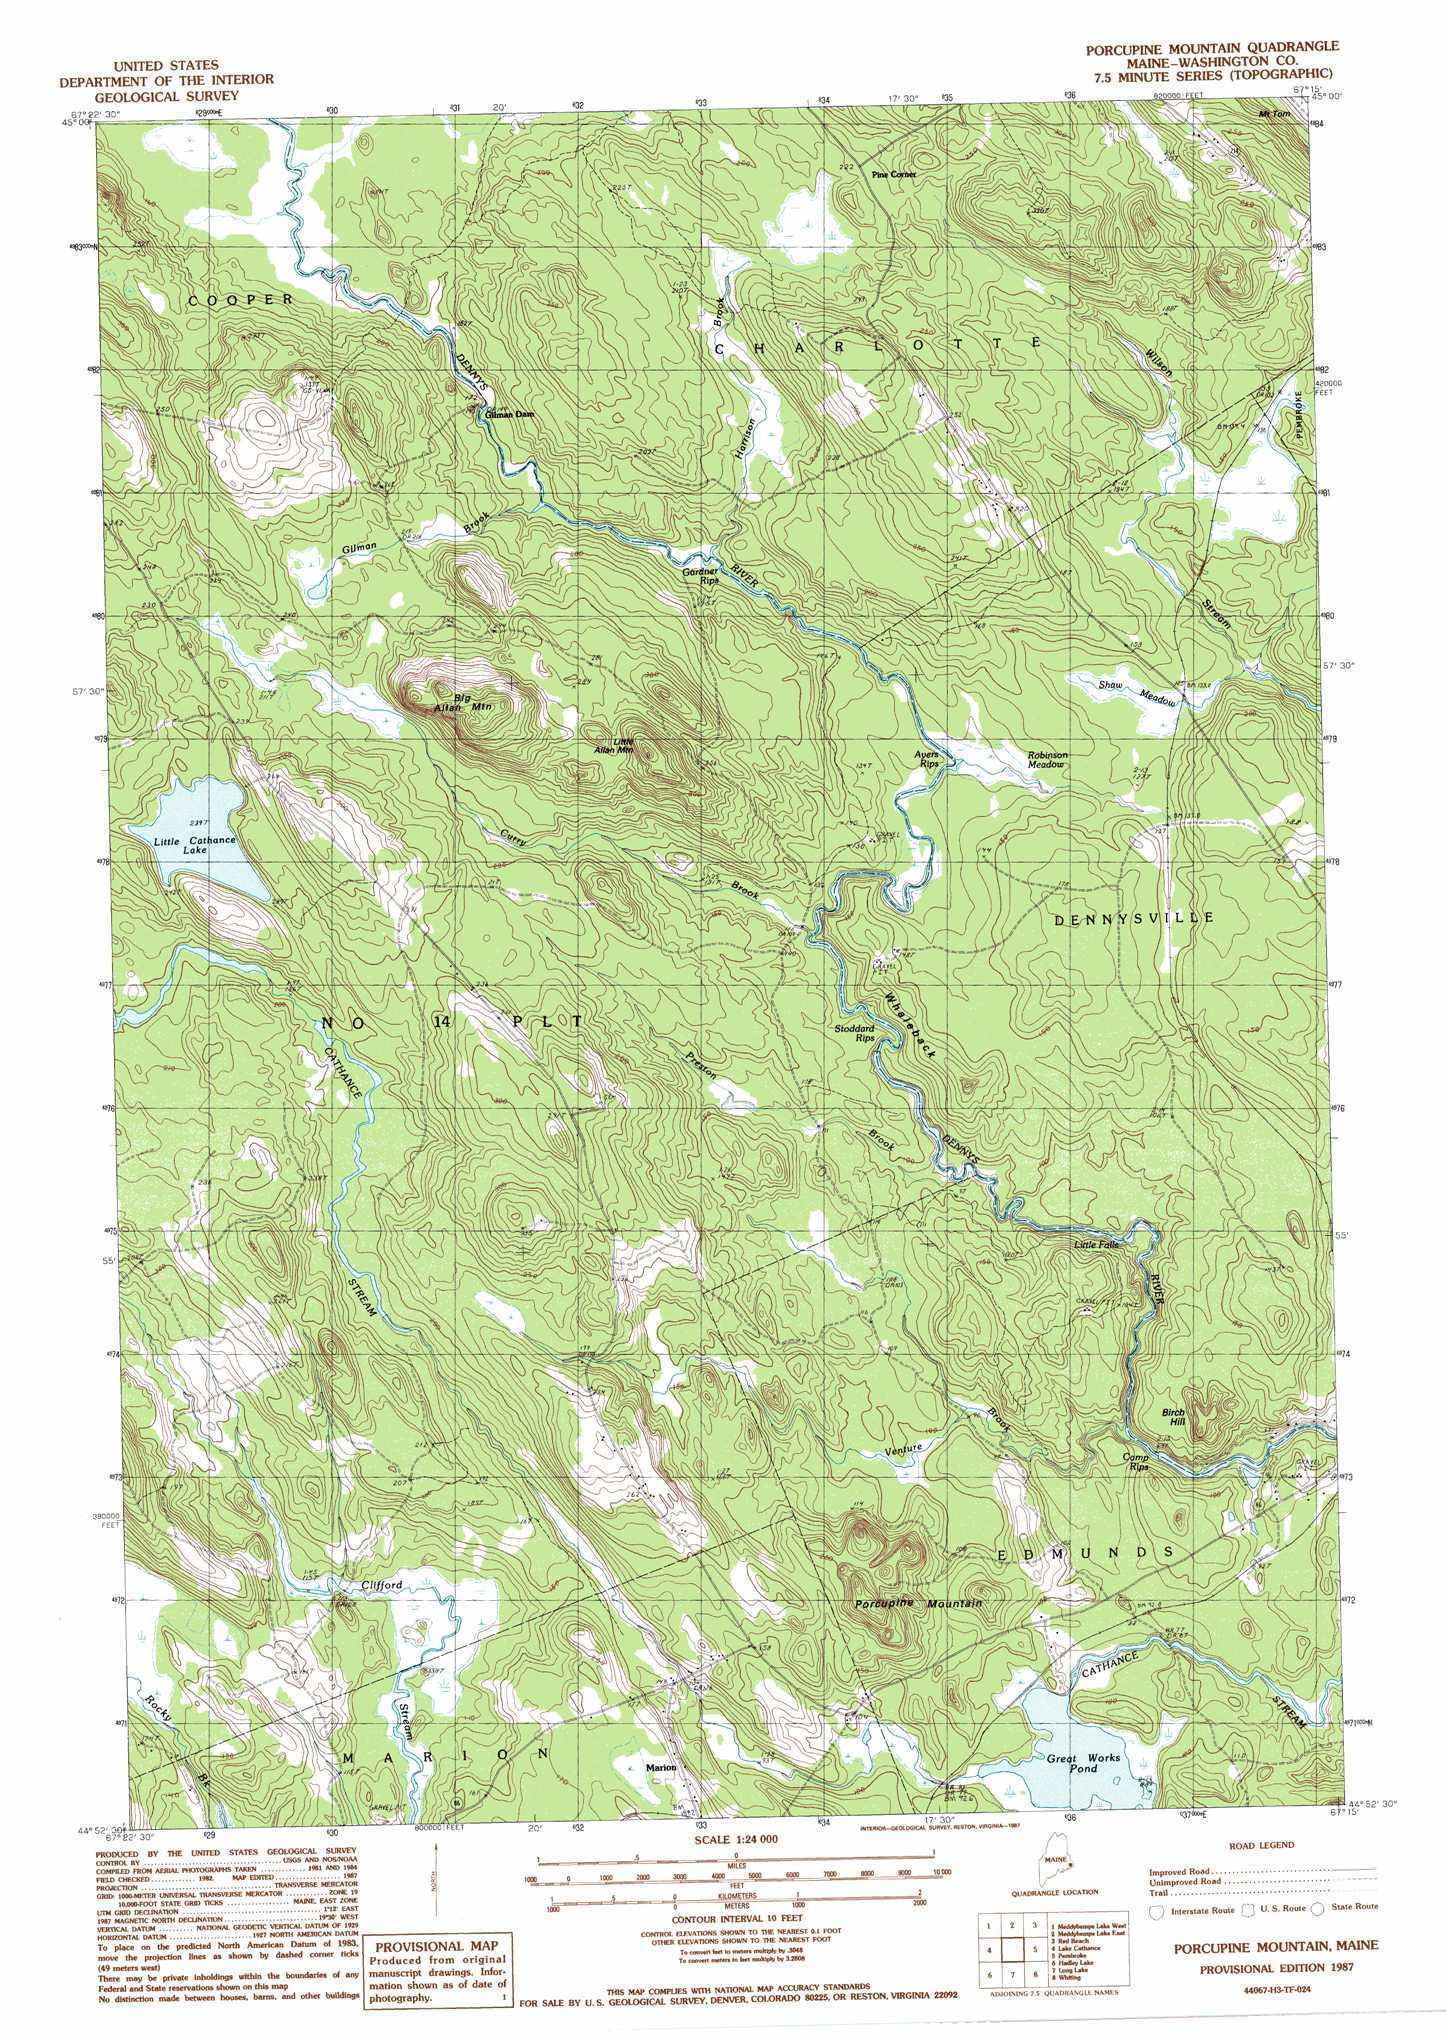 Porcupine Mountain Topographic Map ME USGS Topo Quad H - Where to buy us topo maps